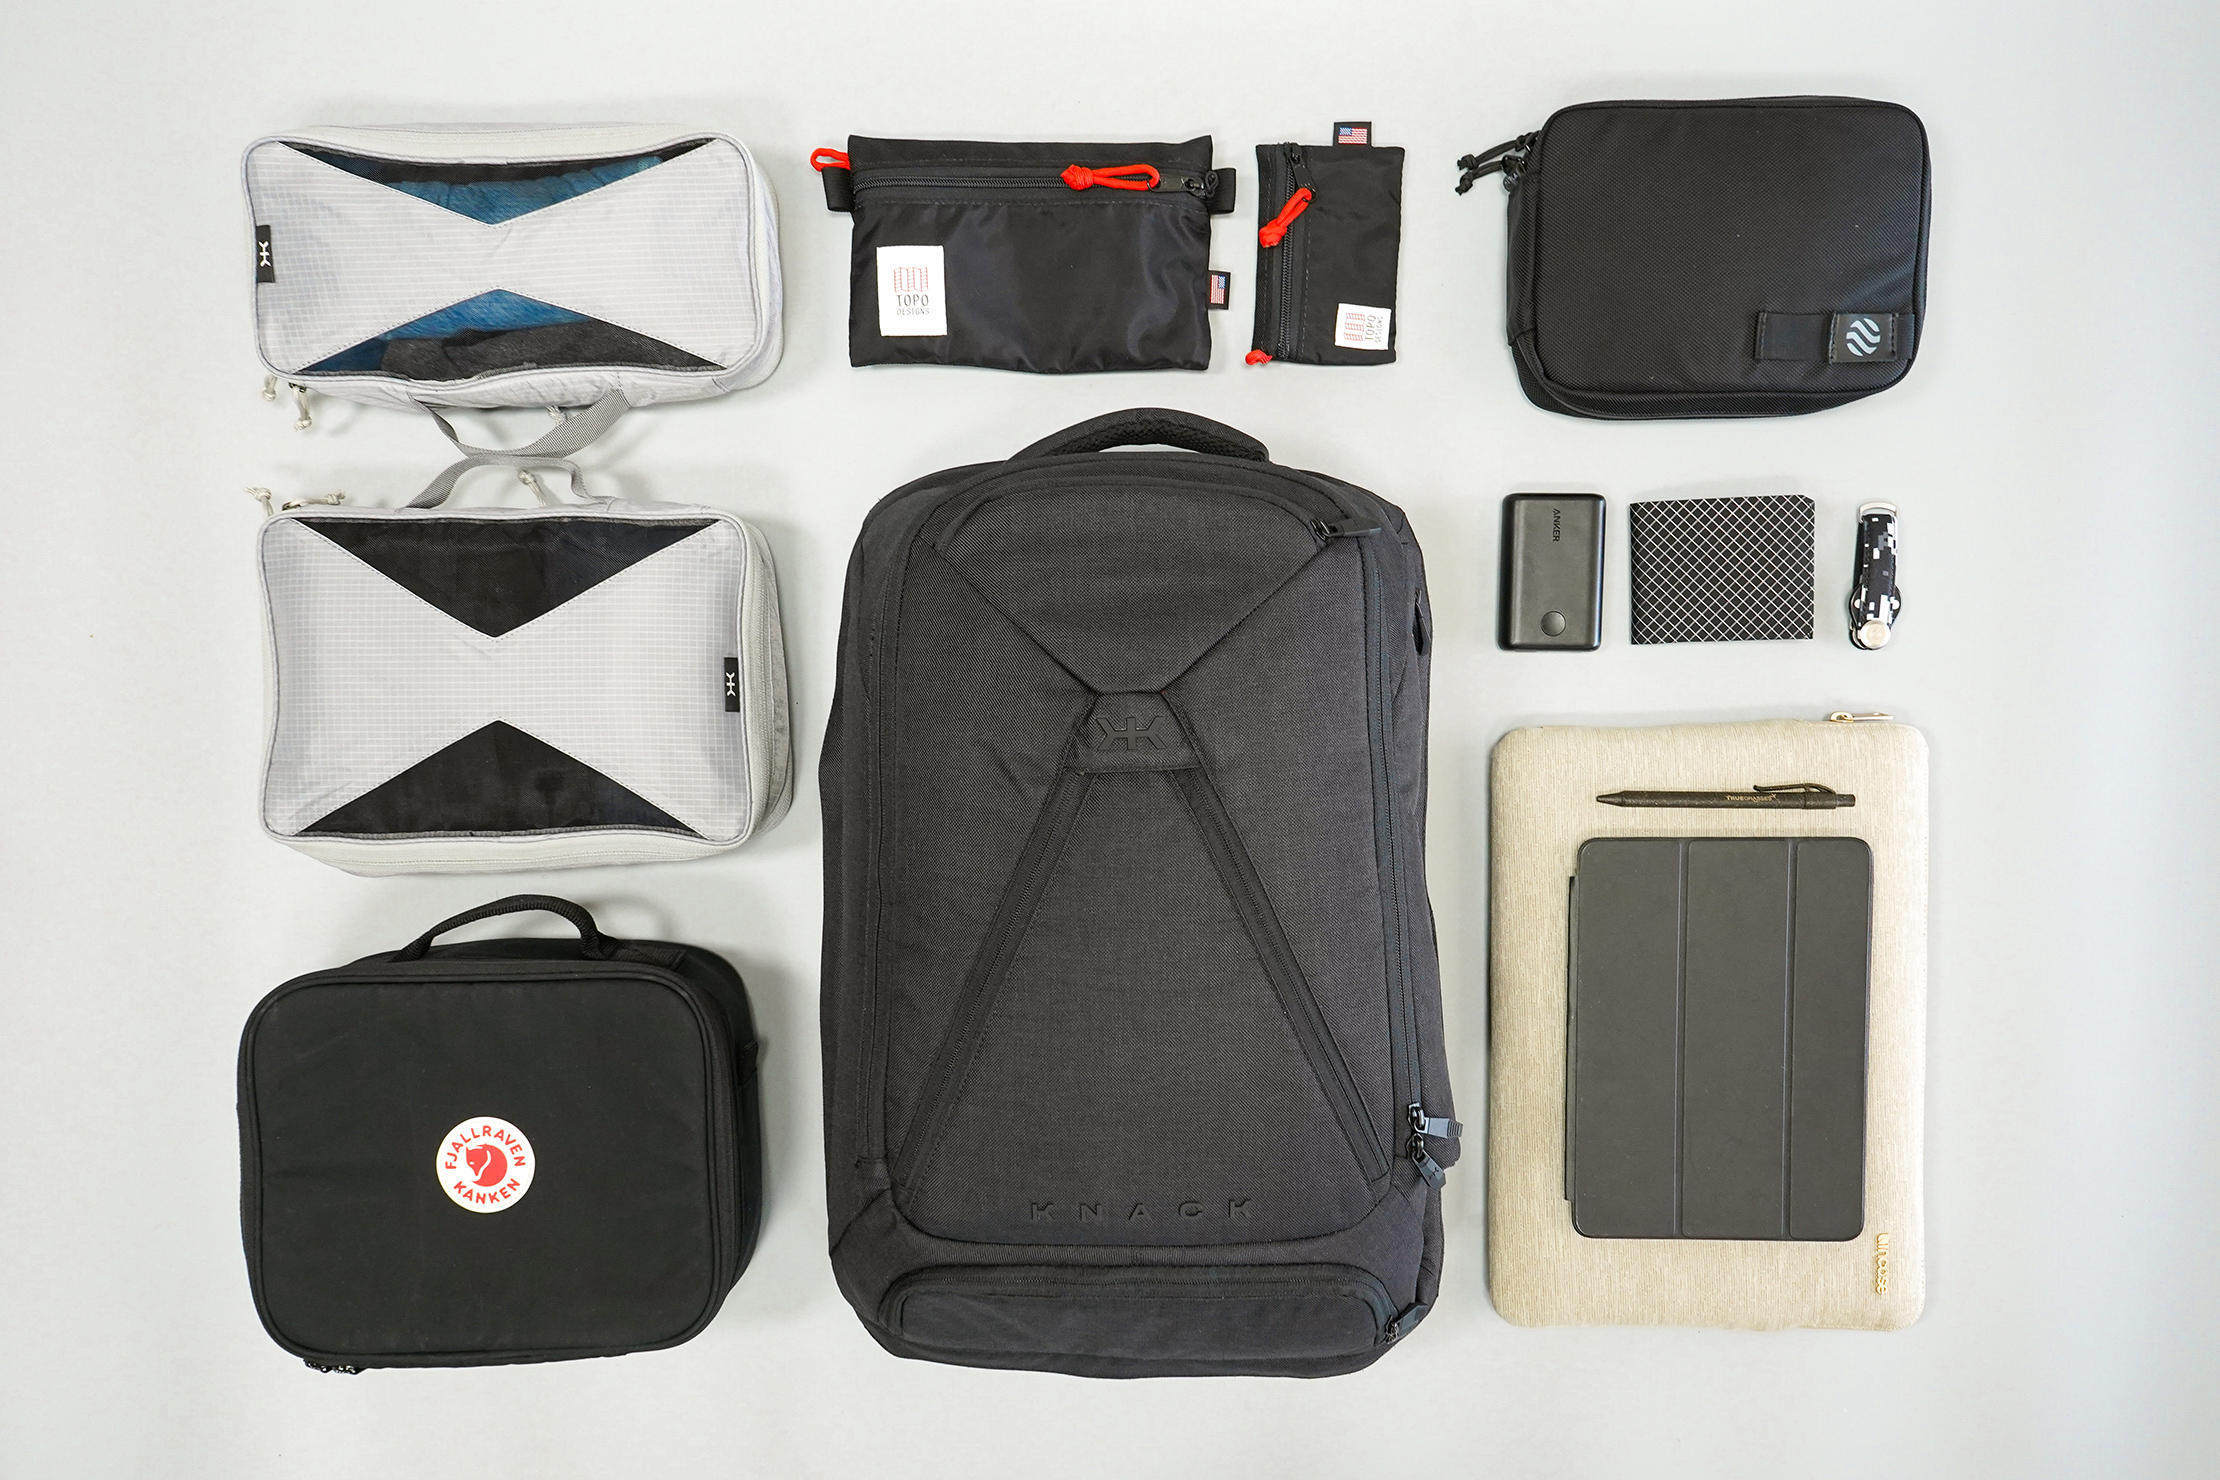 Knack Large Expandable Pack Flat Lay